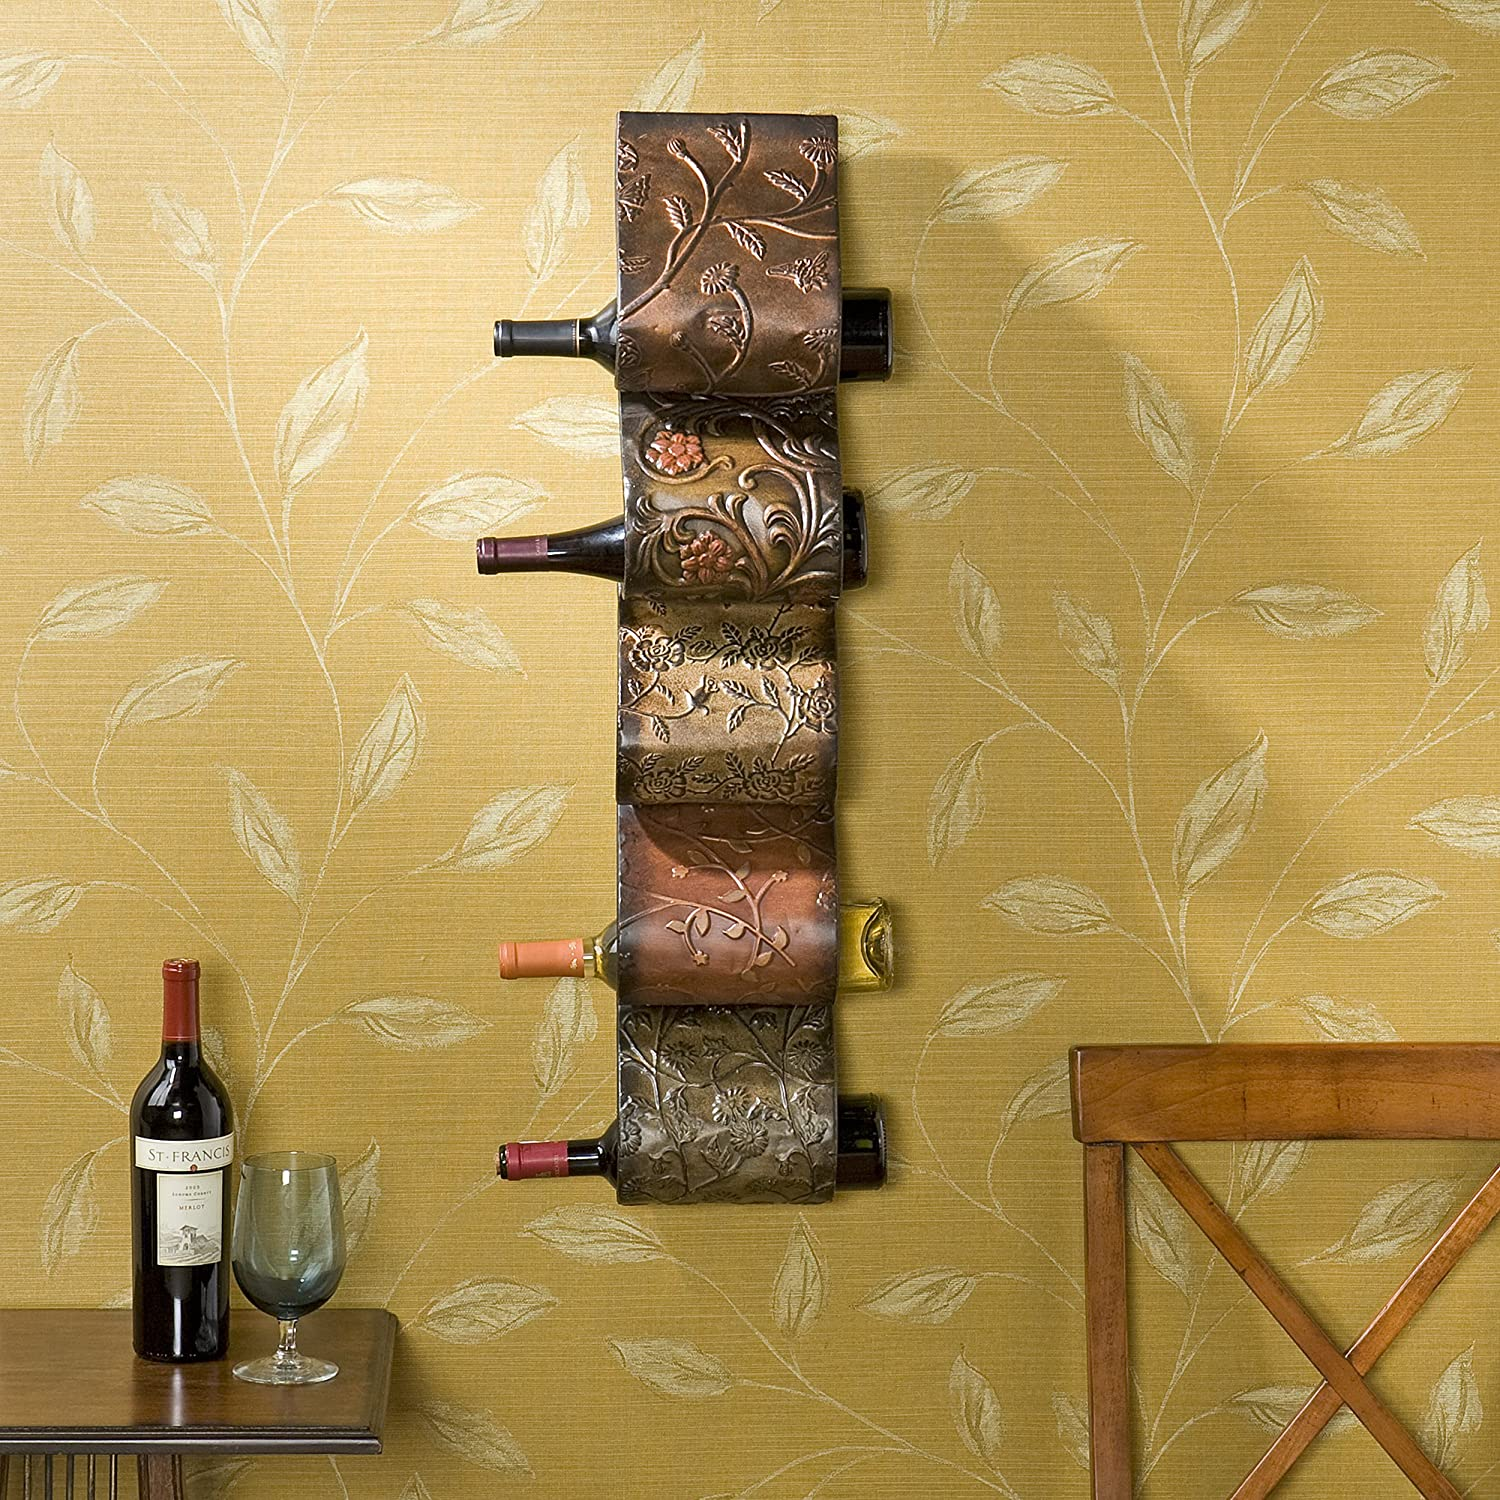 Amazon.com: Southern Enterprises Florenz 5 Wine Bottle Wall Mount ...